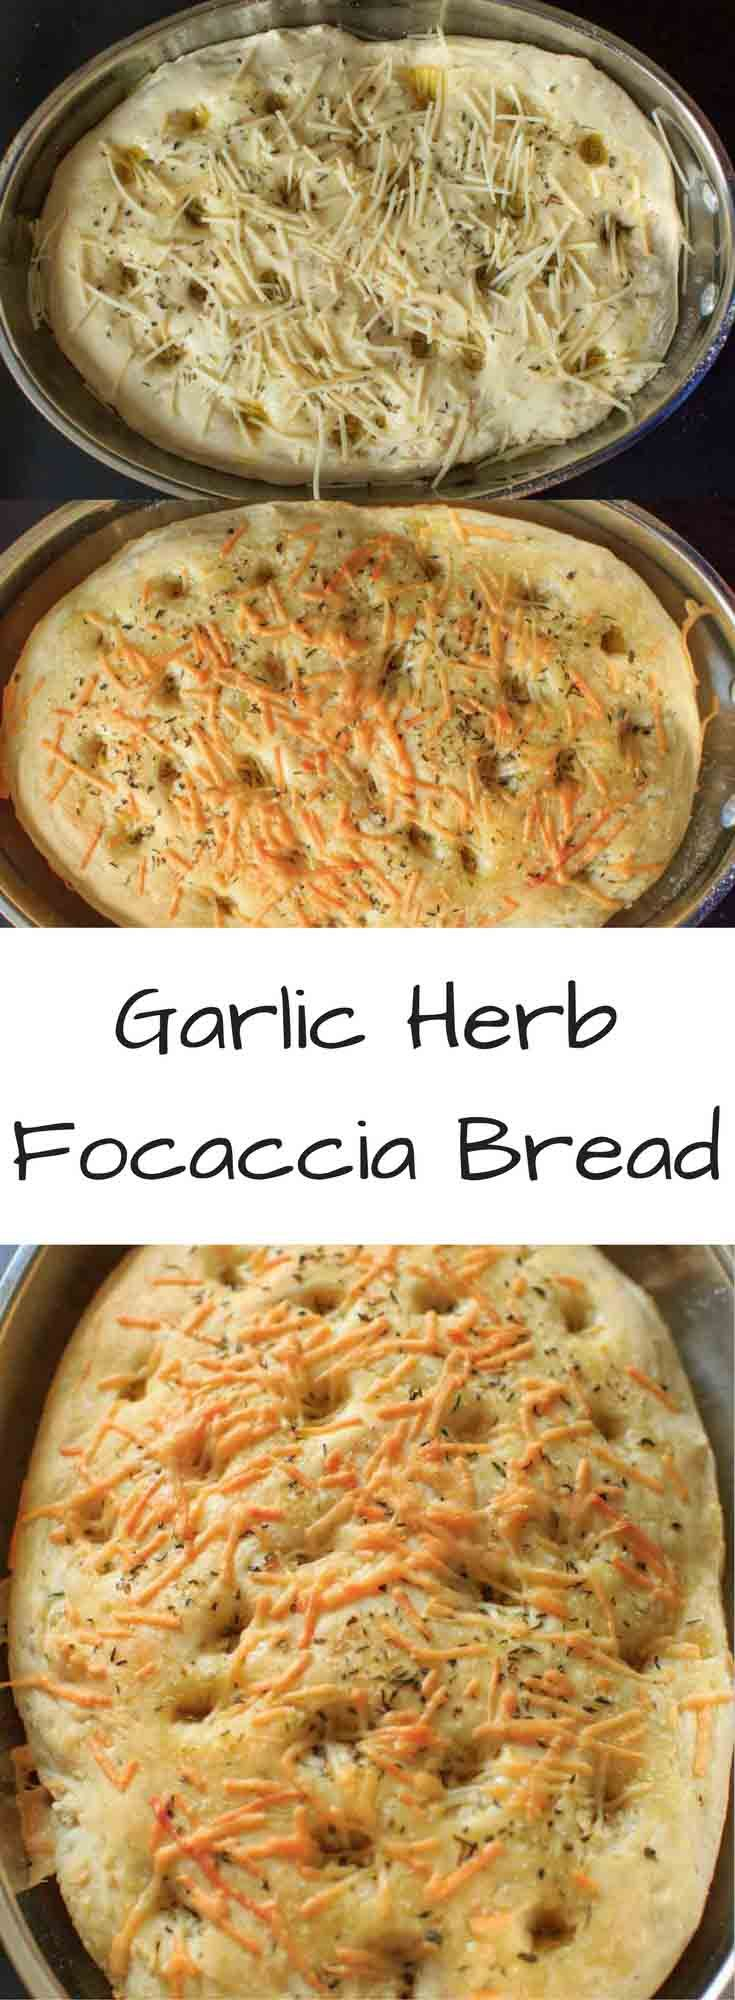 Garlic Herb Focaccia Bread - an easy and flavorful bread that is vegan-friendly. Impress your family or dinner guests with this customizable bread that's better than store-bought.